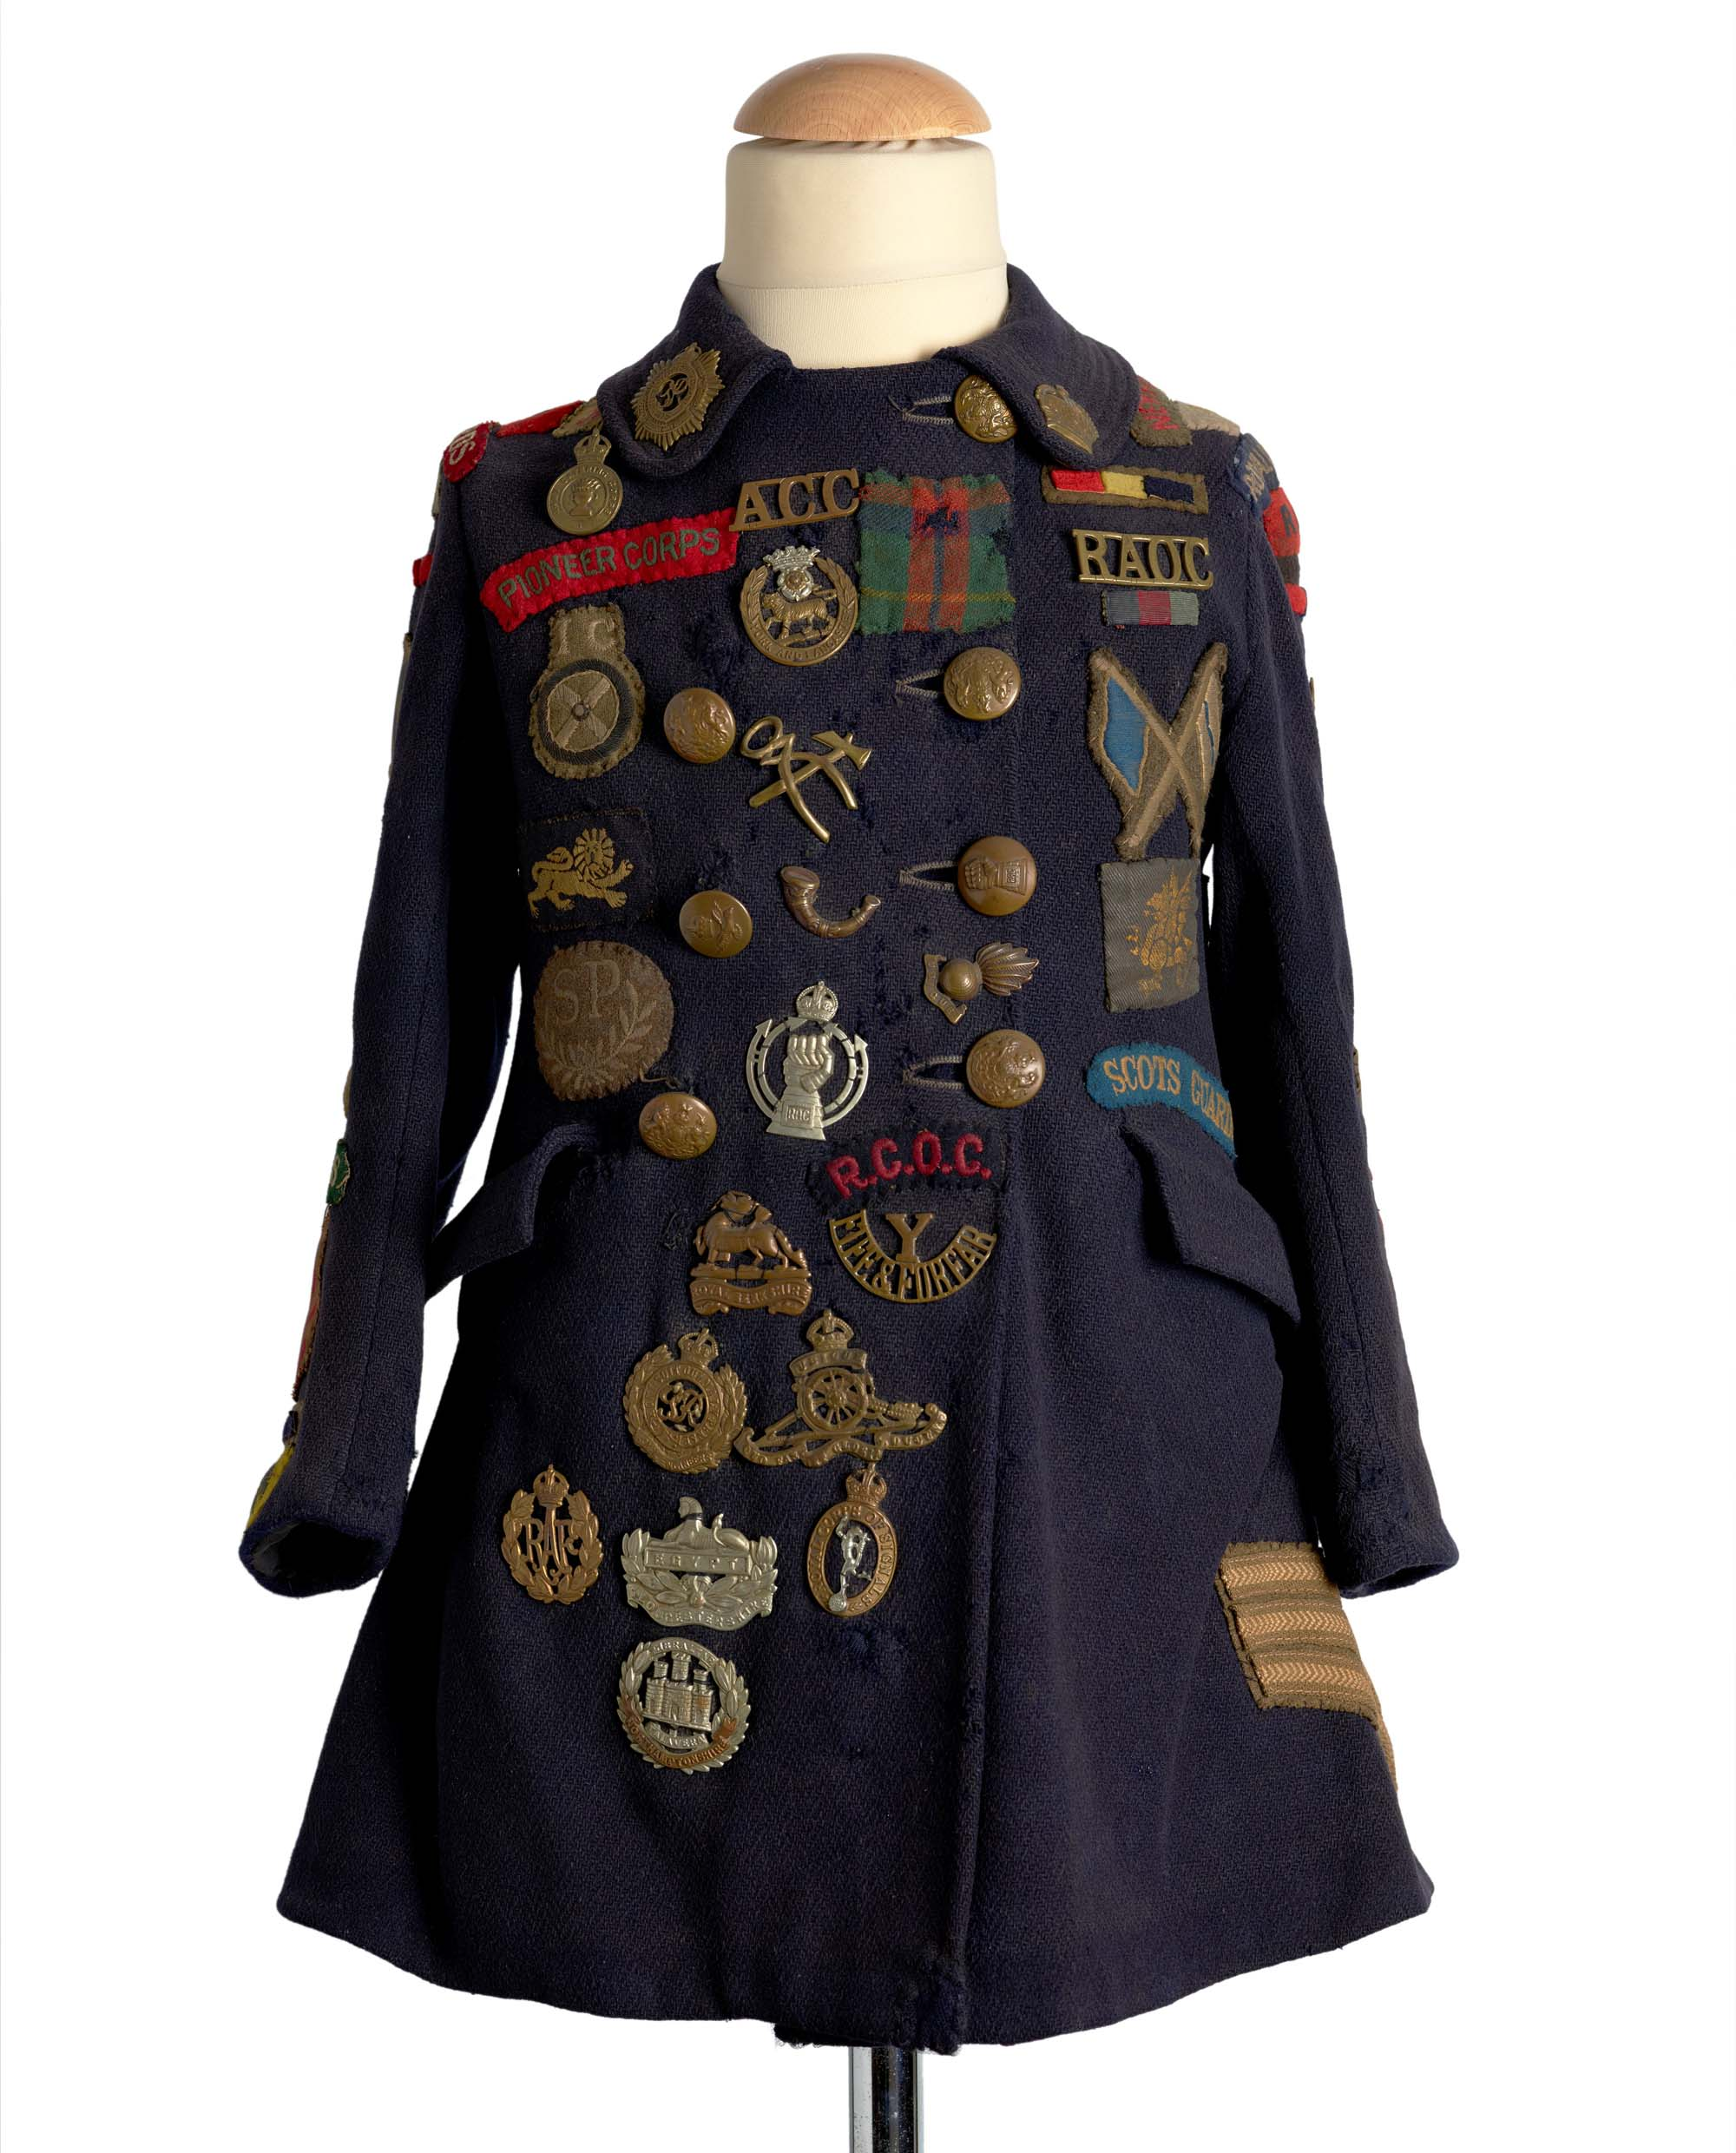 a photo of a blue girls coat covered with military brass and cloth badges